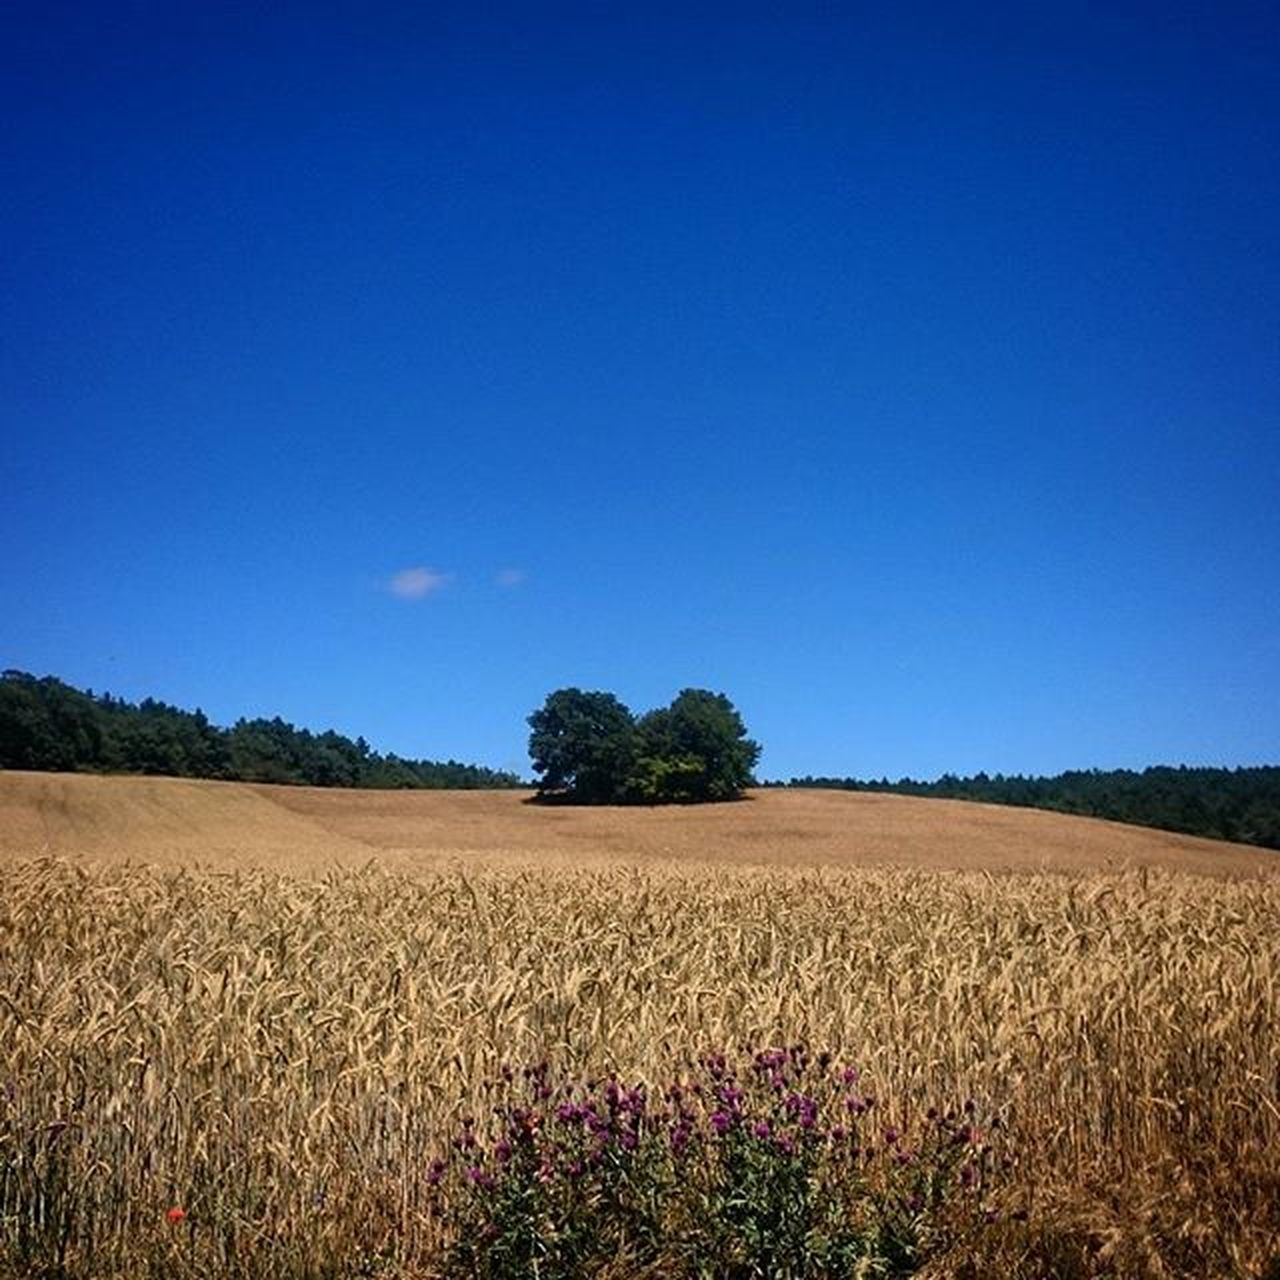 agriculture, field, blue, rural scene, crop, cereal plant, growth, summer, outdoors, nature, sky, no people, landscape, day, food, tree, clear sky, beauty in nature